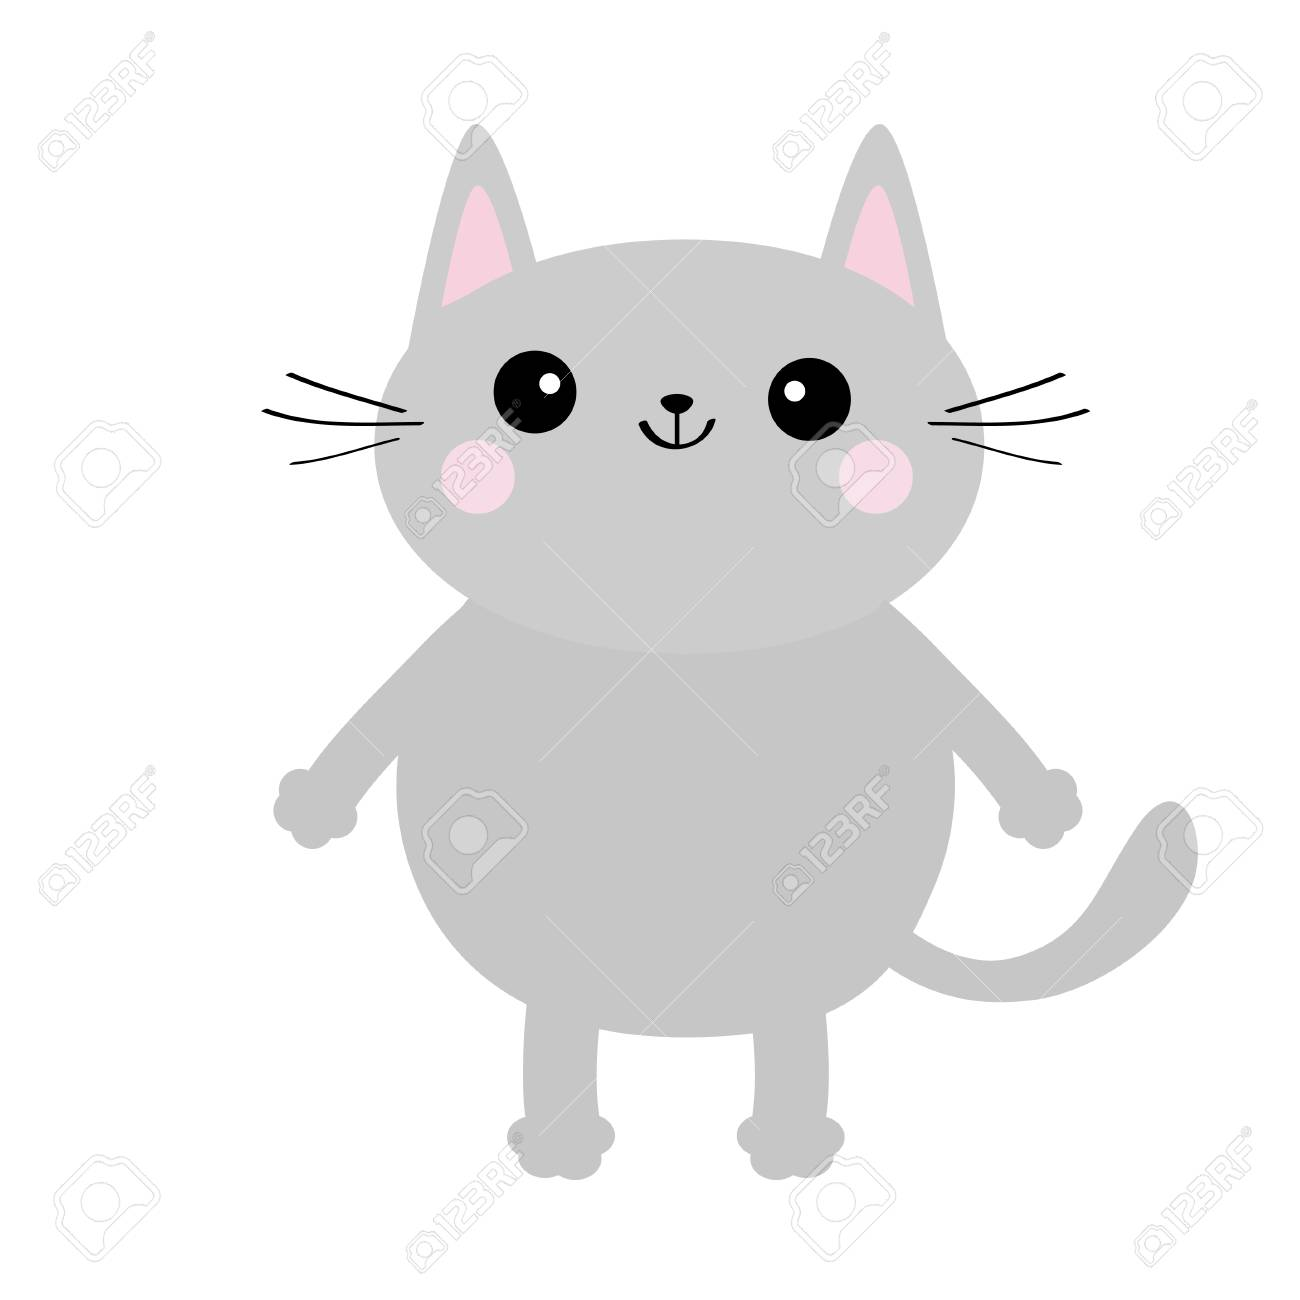 Gray Cat Face Silhouette Cute Cartoon Kitty Character Kawaii Royalty Free Cliparts Vectors And Stock Illustration Image 103112855